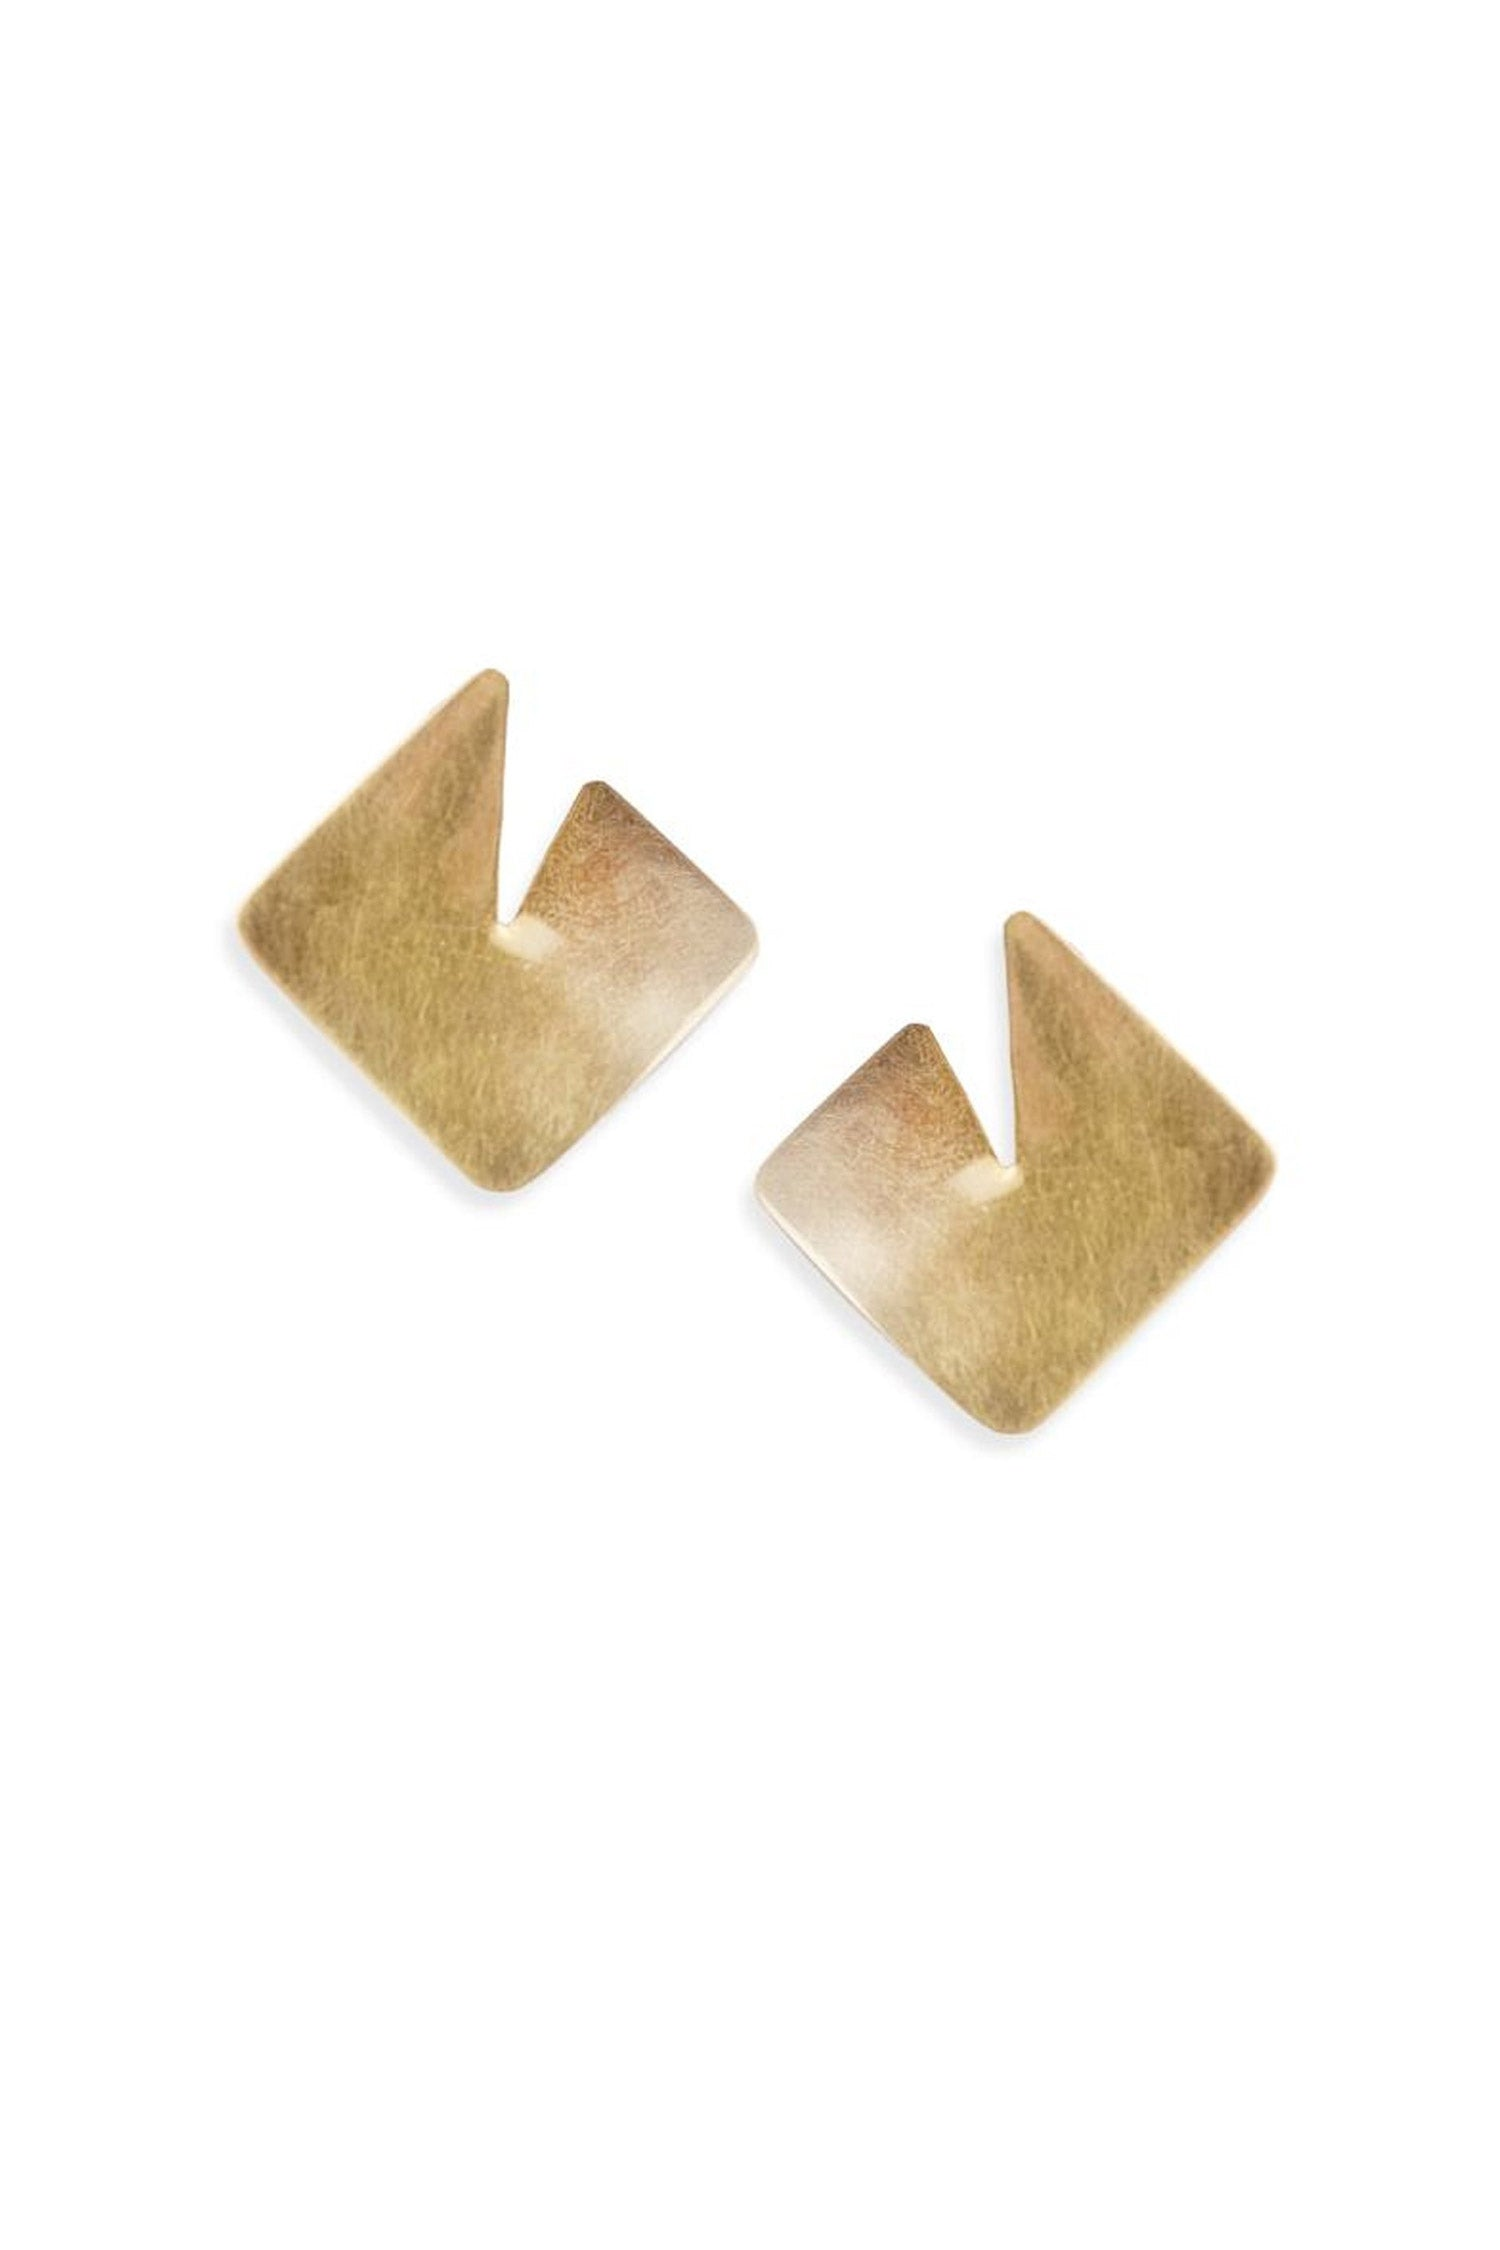 Soko Square Sia Studs - Brass Earrings - Ethical jewelry